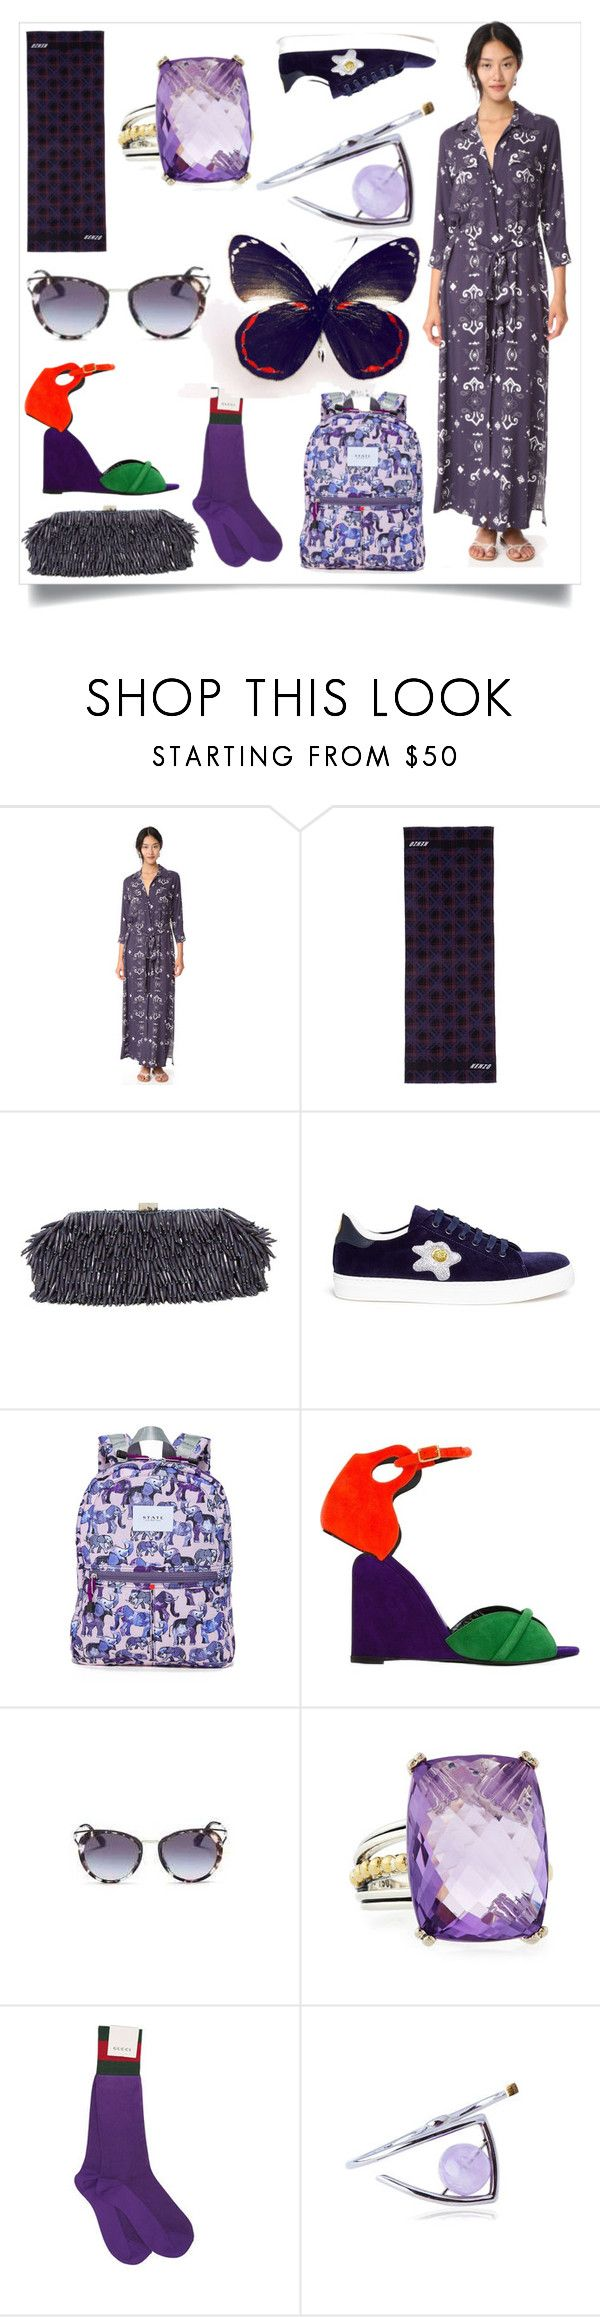 """""""Top fashion"""" by ramakumari ❤ liked on Polyvore featuring L'Agence, Kenzo, Santi, Anya Hindmarch, State, Pierre Hardy and Gucci"""